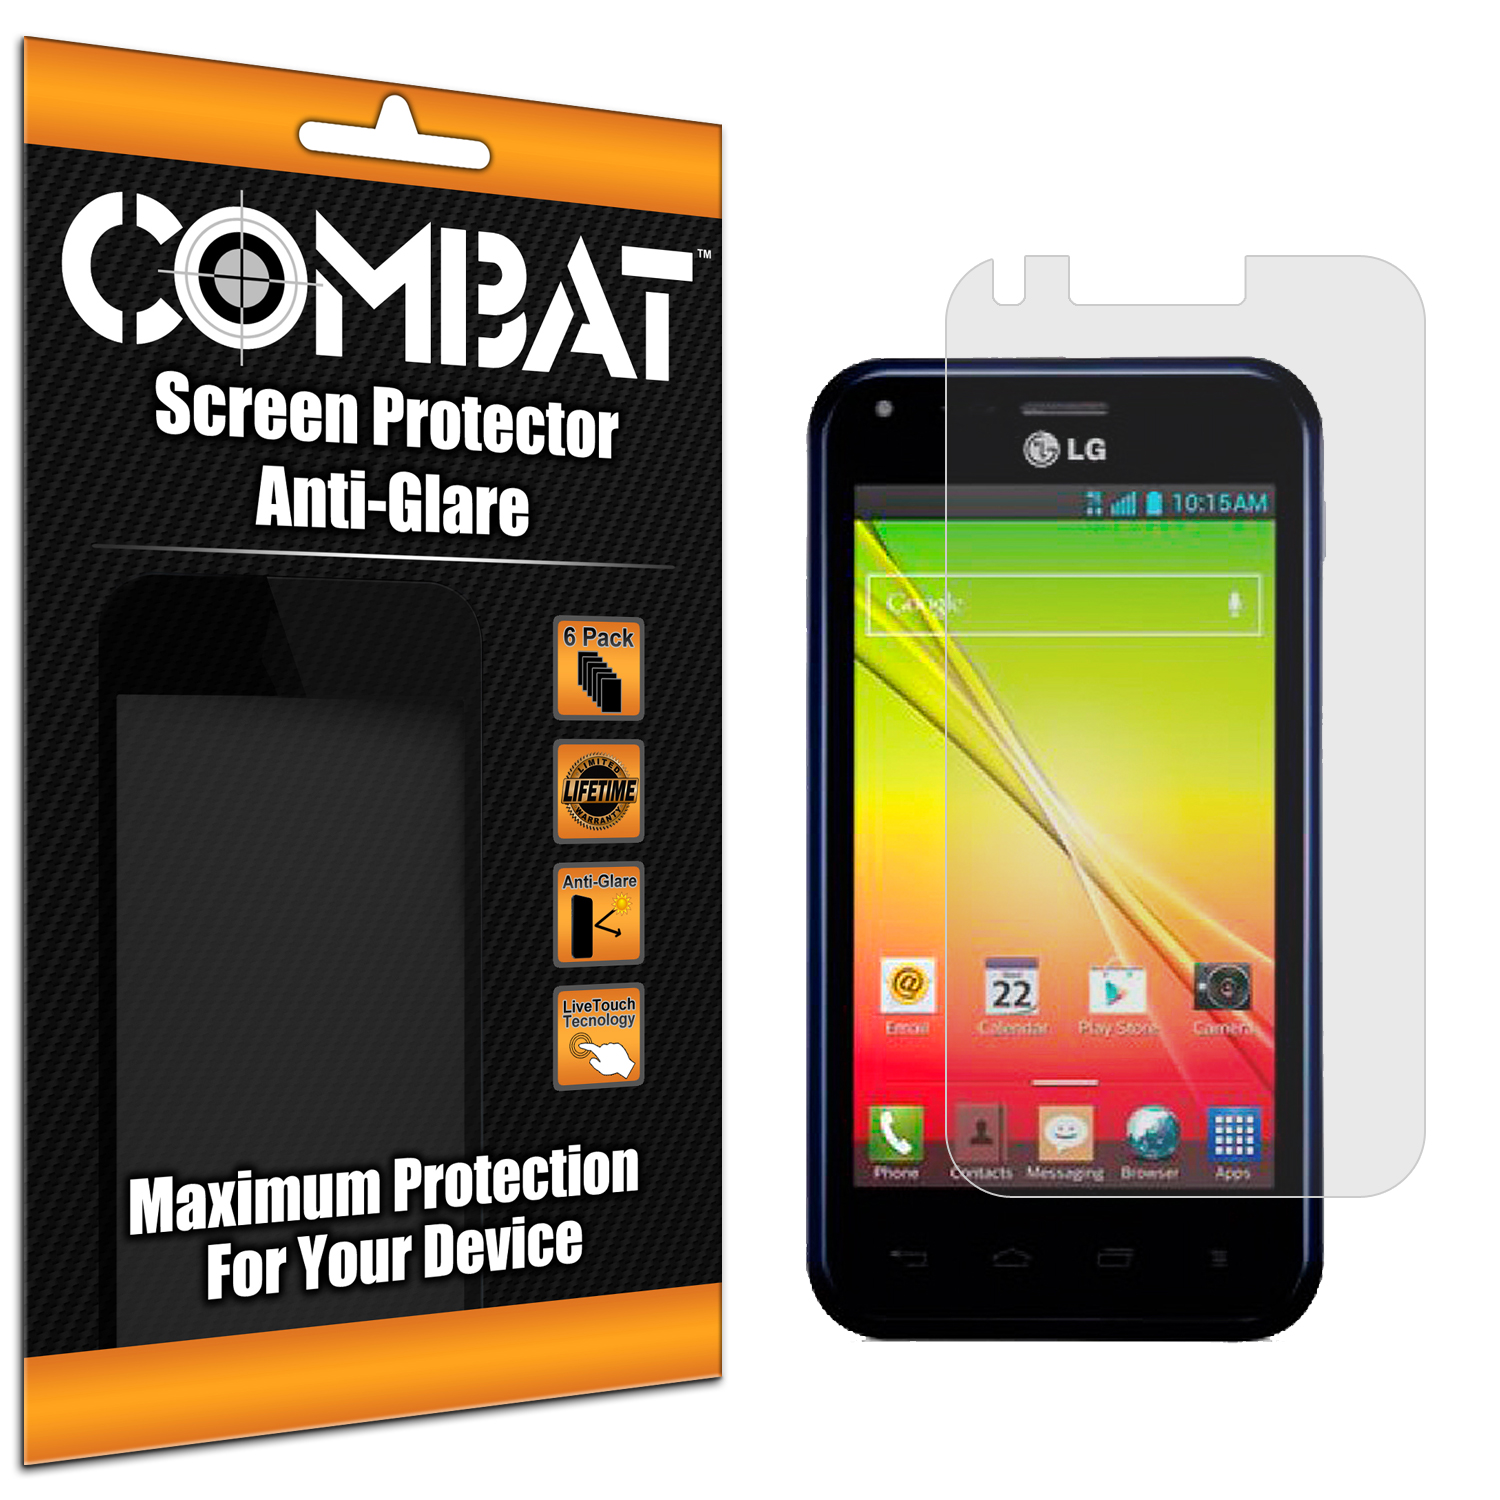 LG Optimus F3Q Combat 6 Pack Anti-Glare Matte Screen Protector